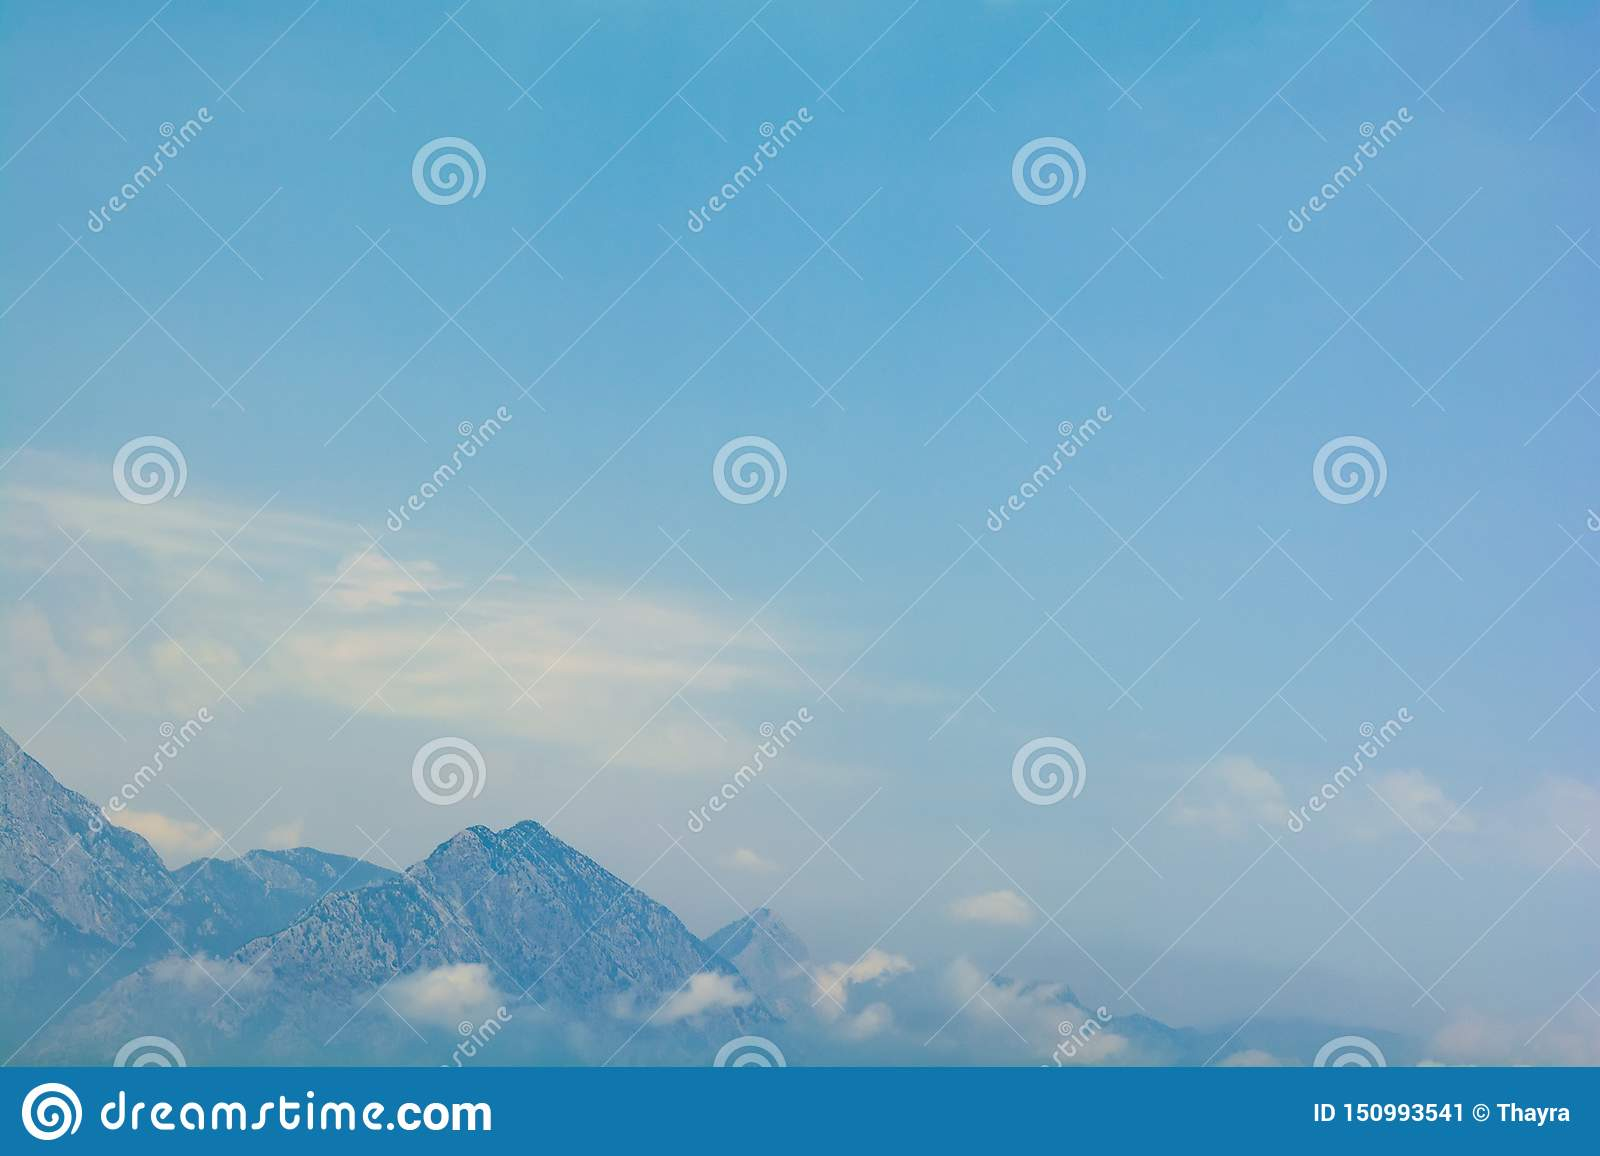 Sea view on peaks of Taurus Mountains covered by low clouds and fog from boat. Travel concept. Soft focus